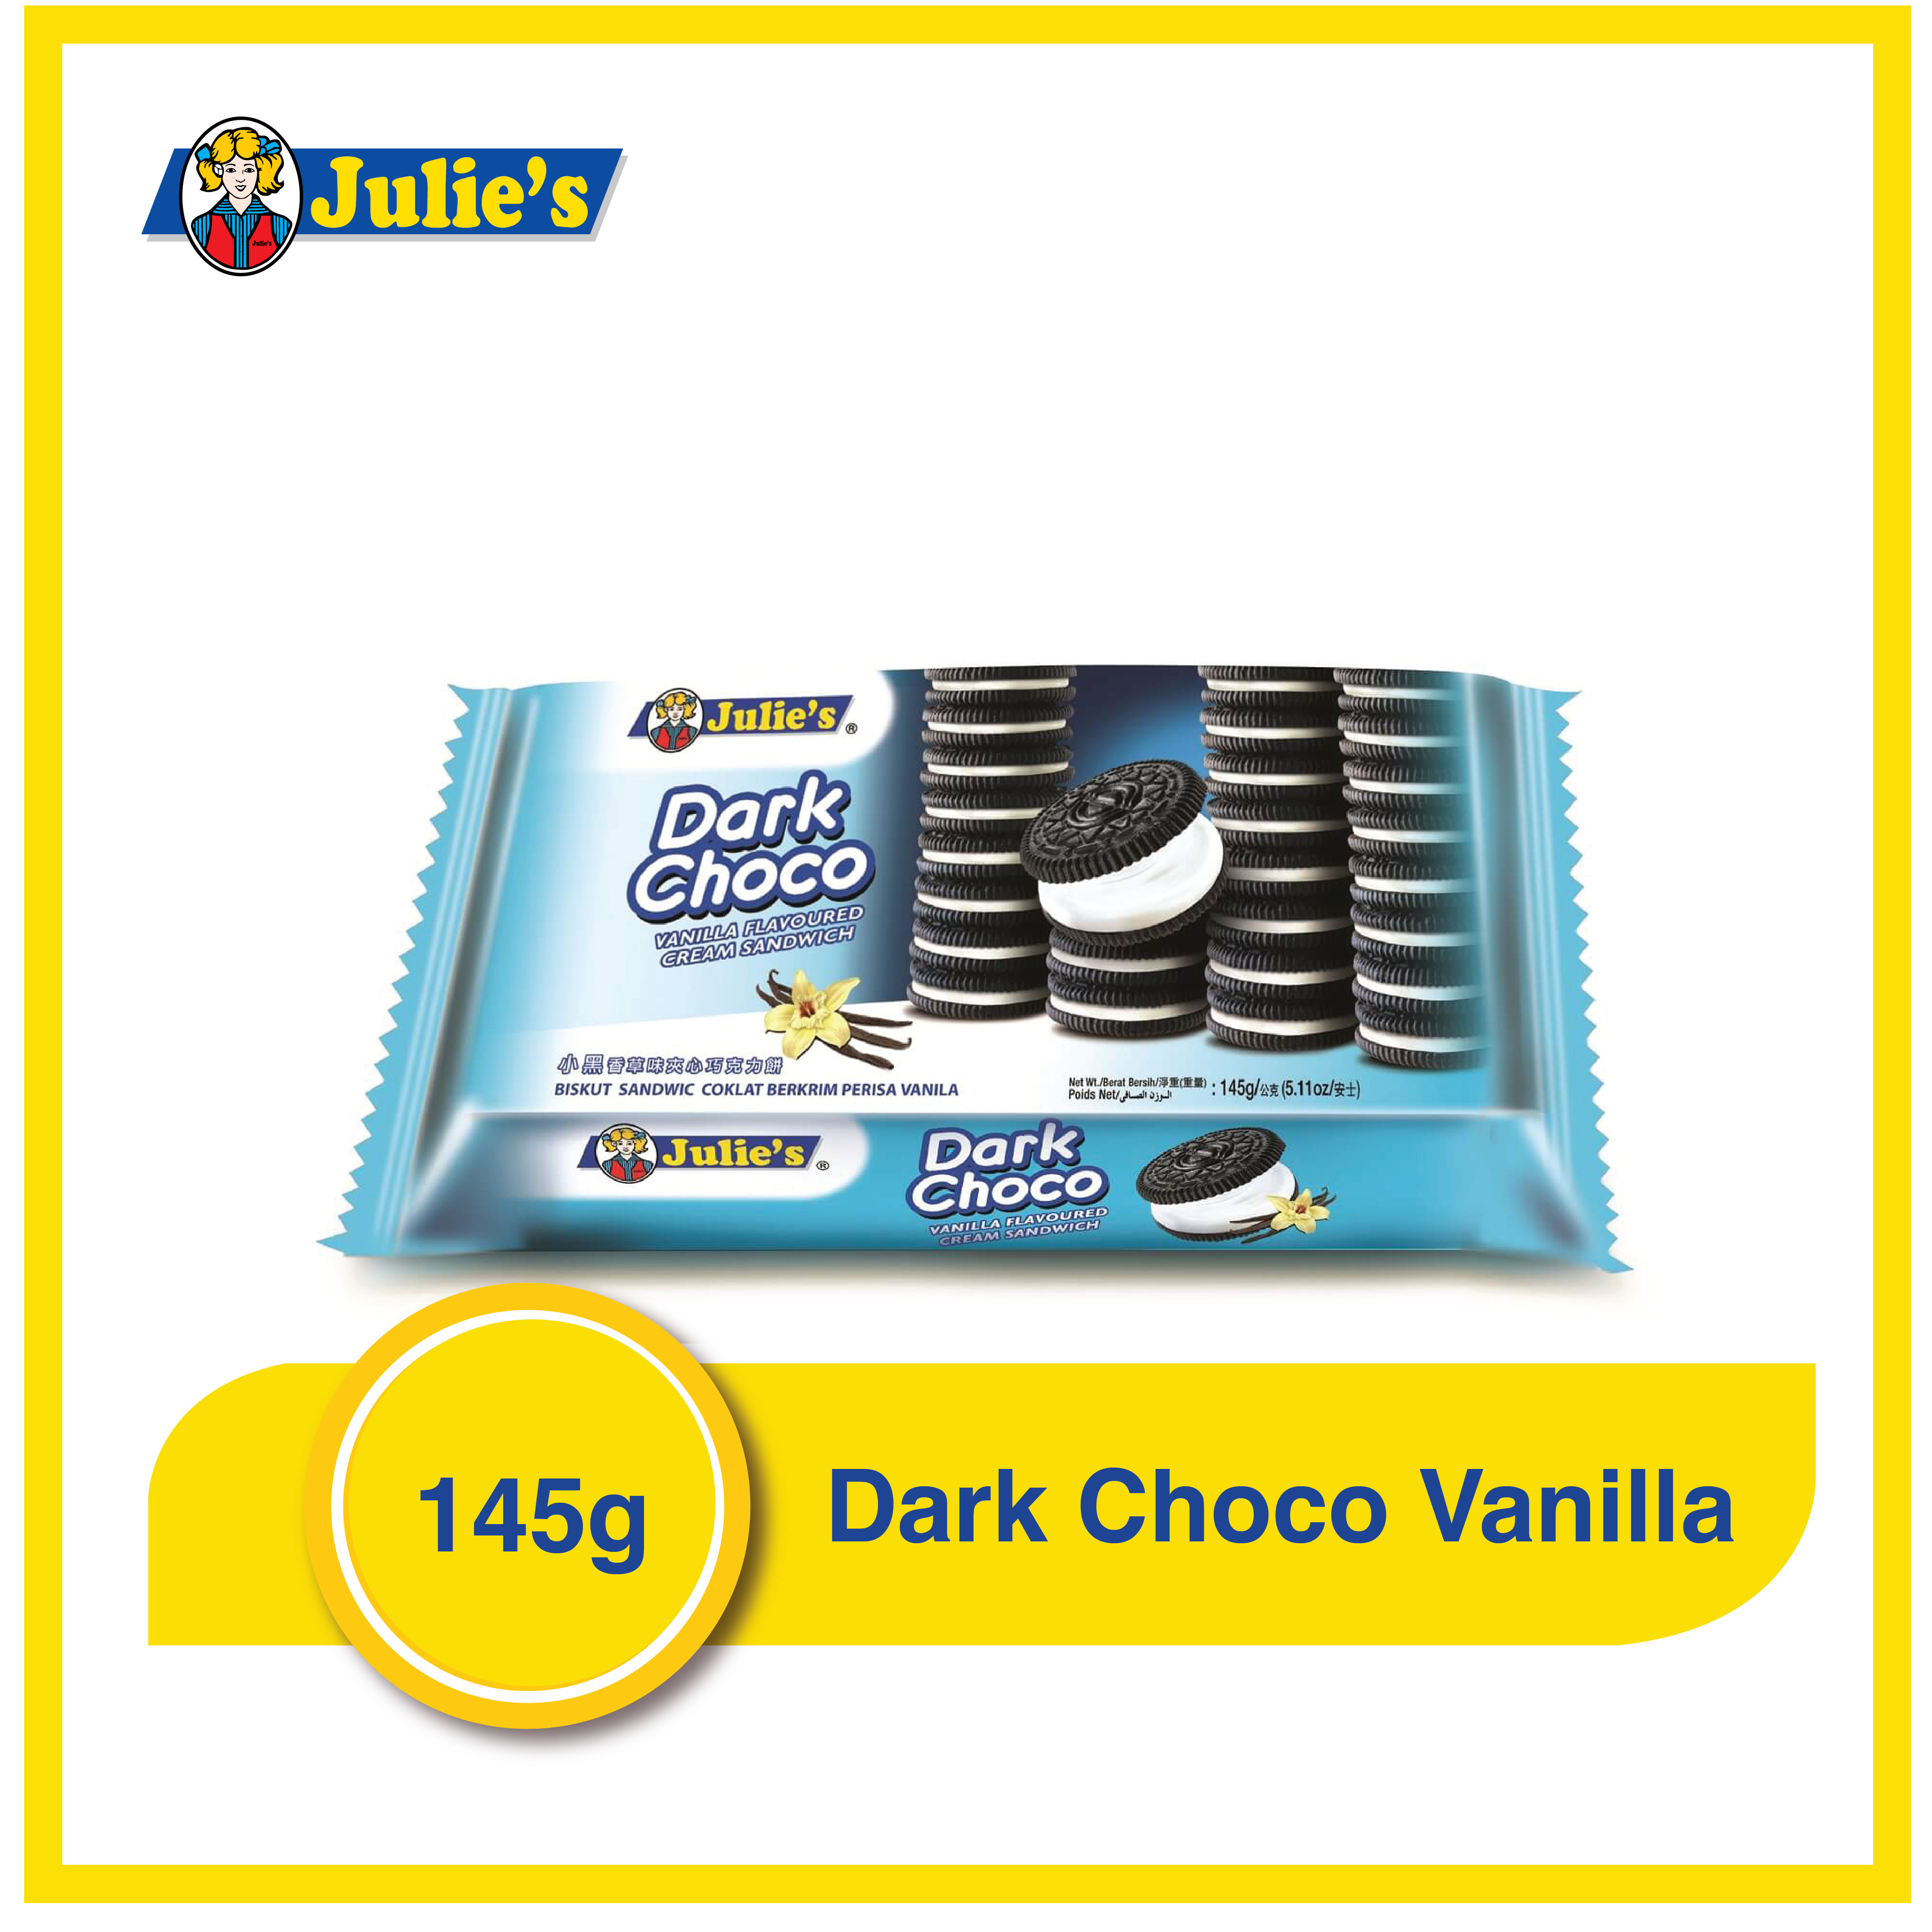 Julies Dark Choco Vanilla Flavoured Cream Sandwich 145g x 1 pack